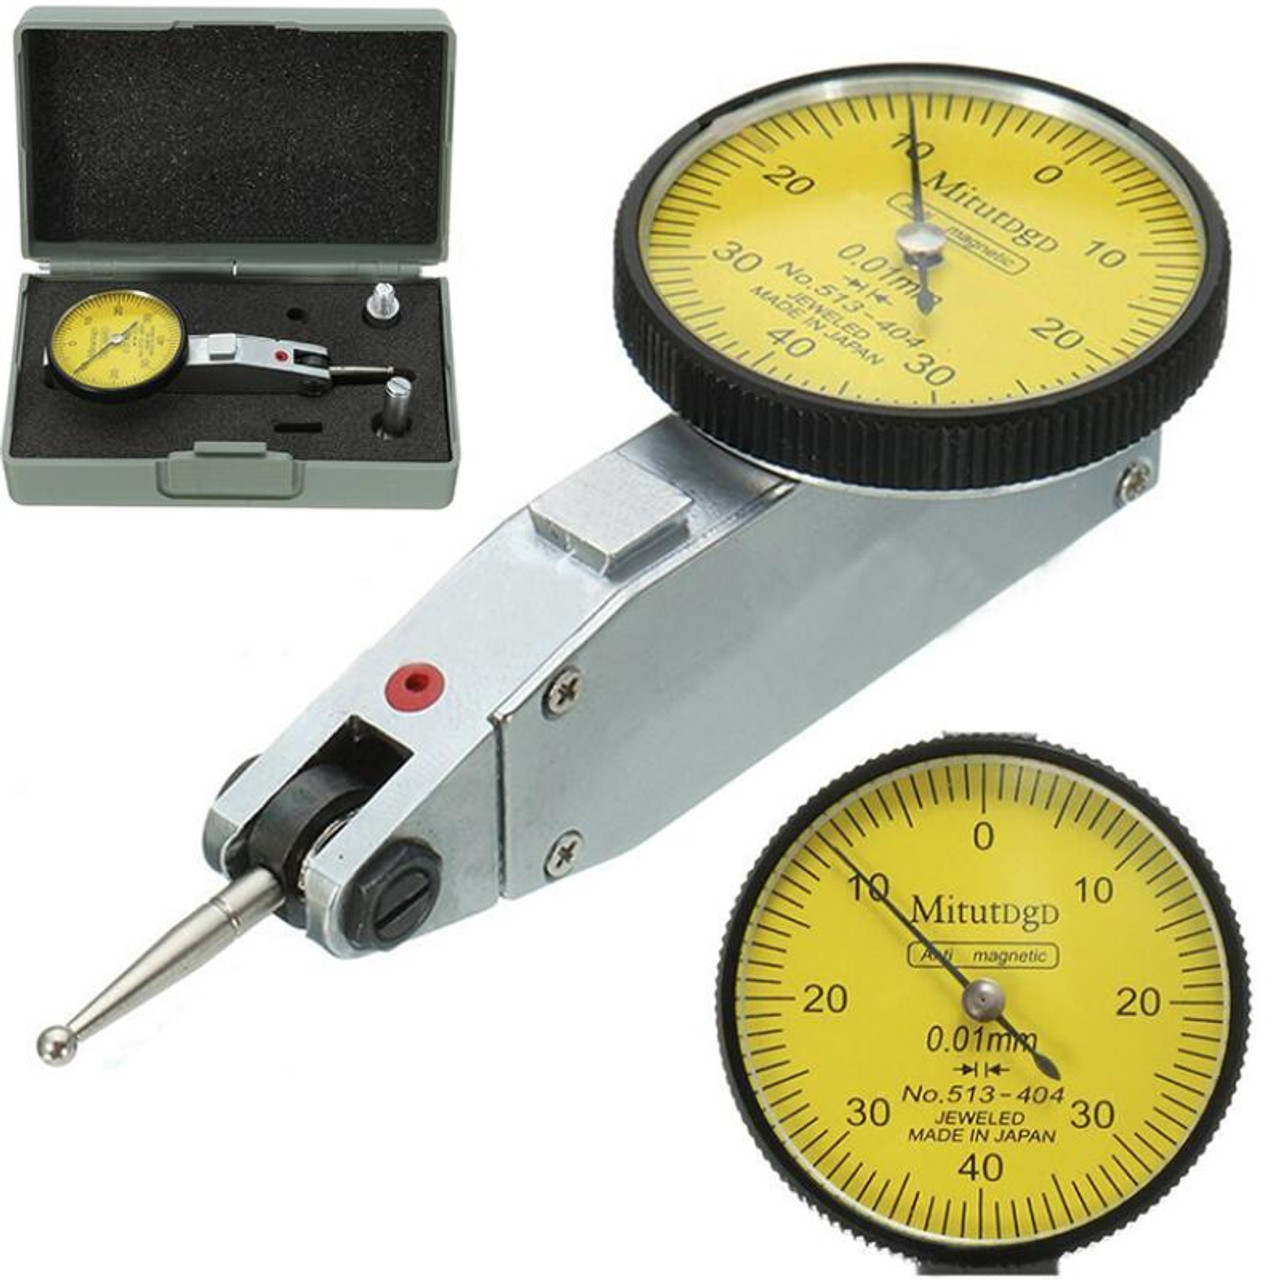 NEW 0.01mm Accurancy Dial Quick-Set Test Indicator Gauge Scale dovertail 0-40-0